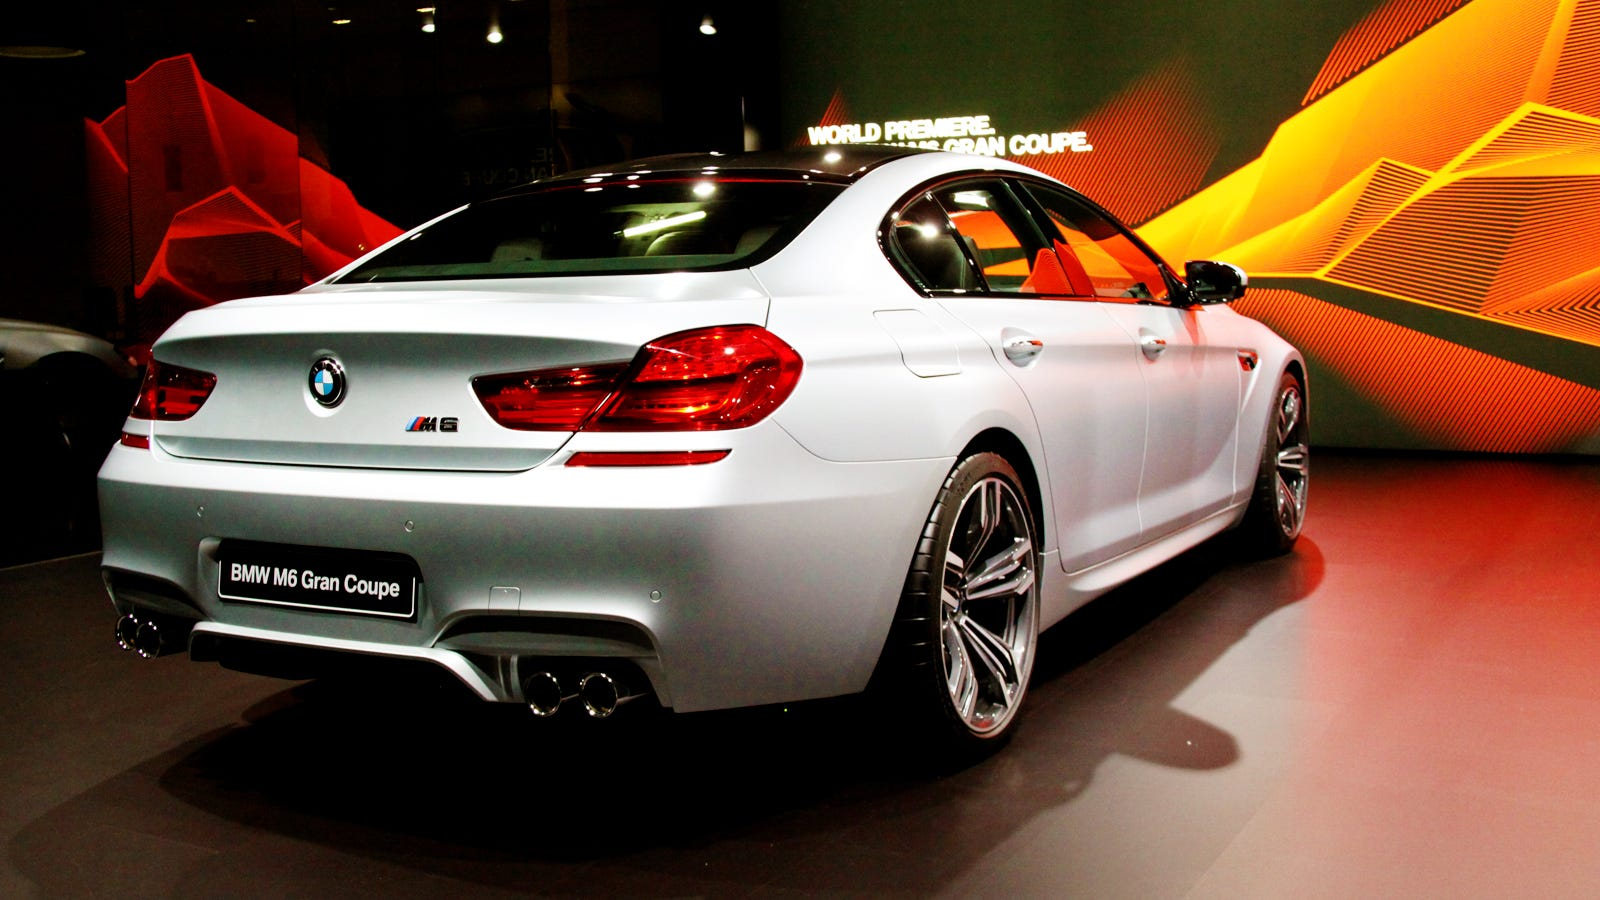 2014 bmw m6 gran coupe daaaaaaaamn. Black Bedroom Furniture Sets. Home Design Ideas